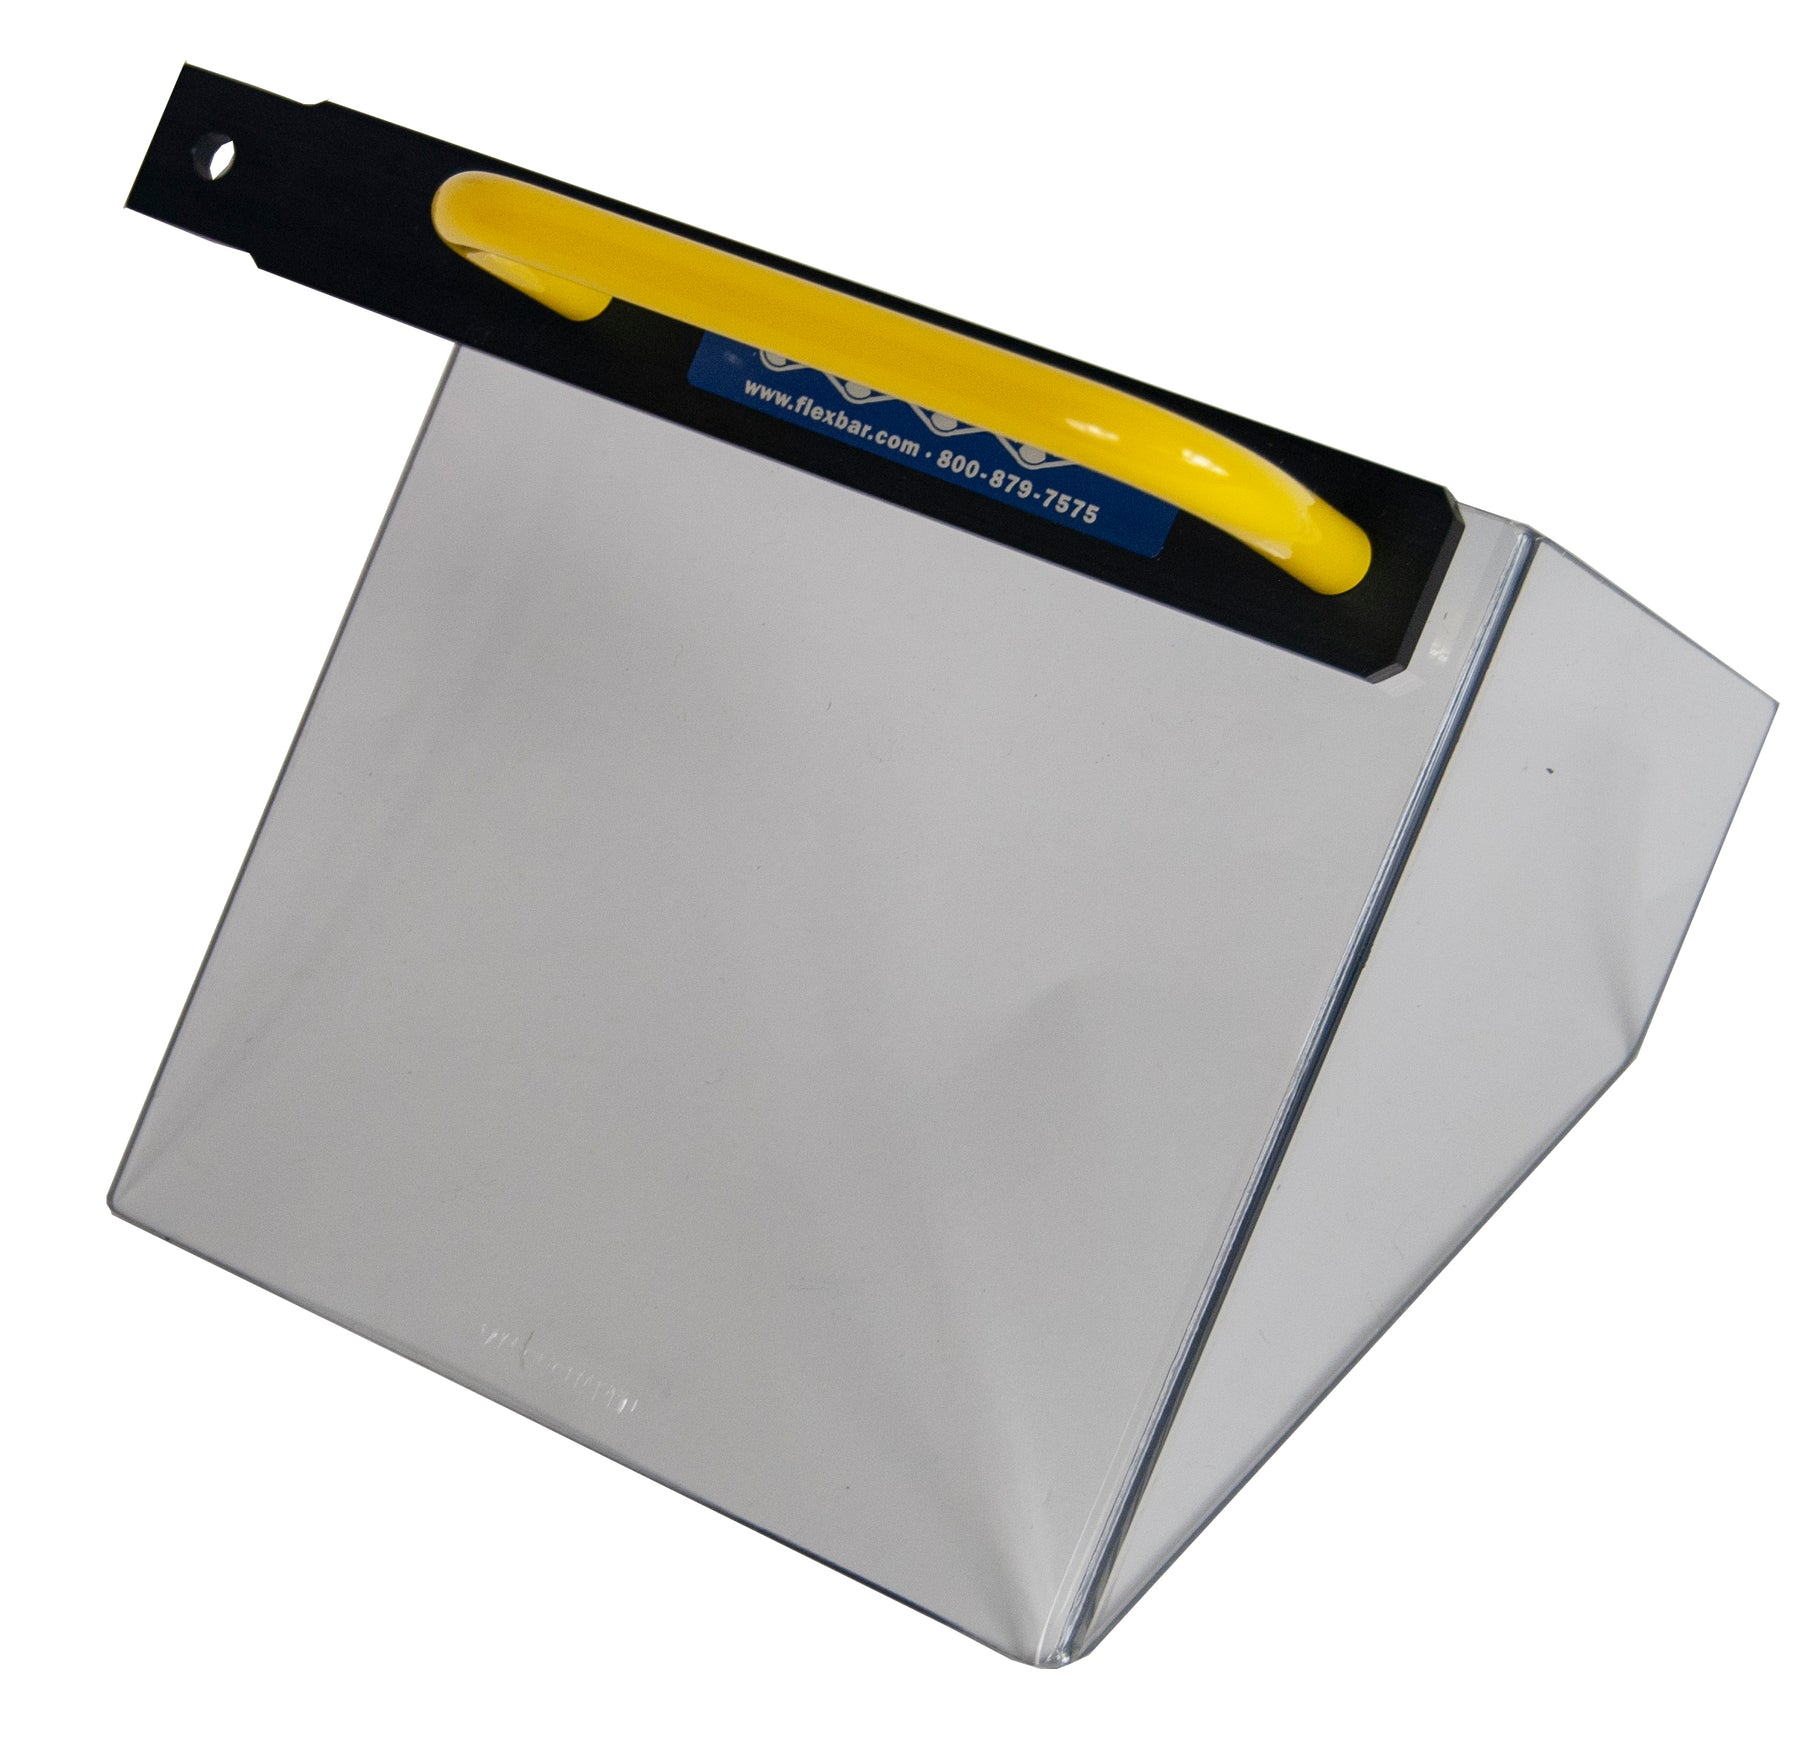 Band Saw Visorguard™ Replacement Shield